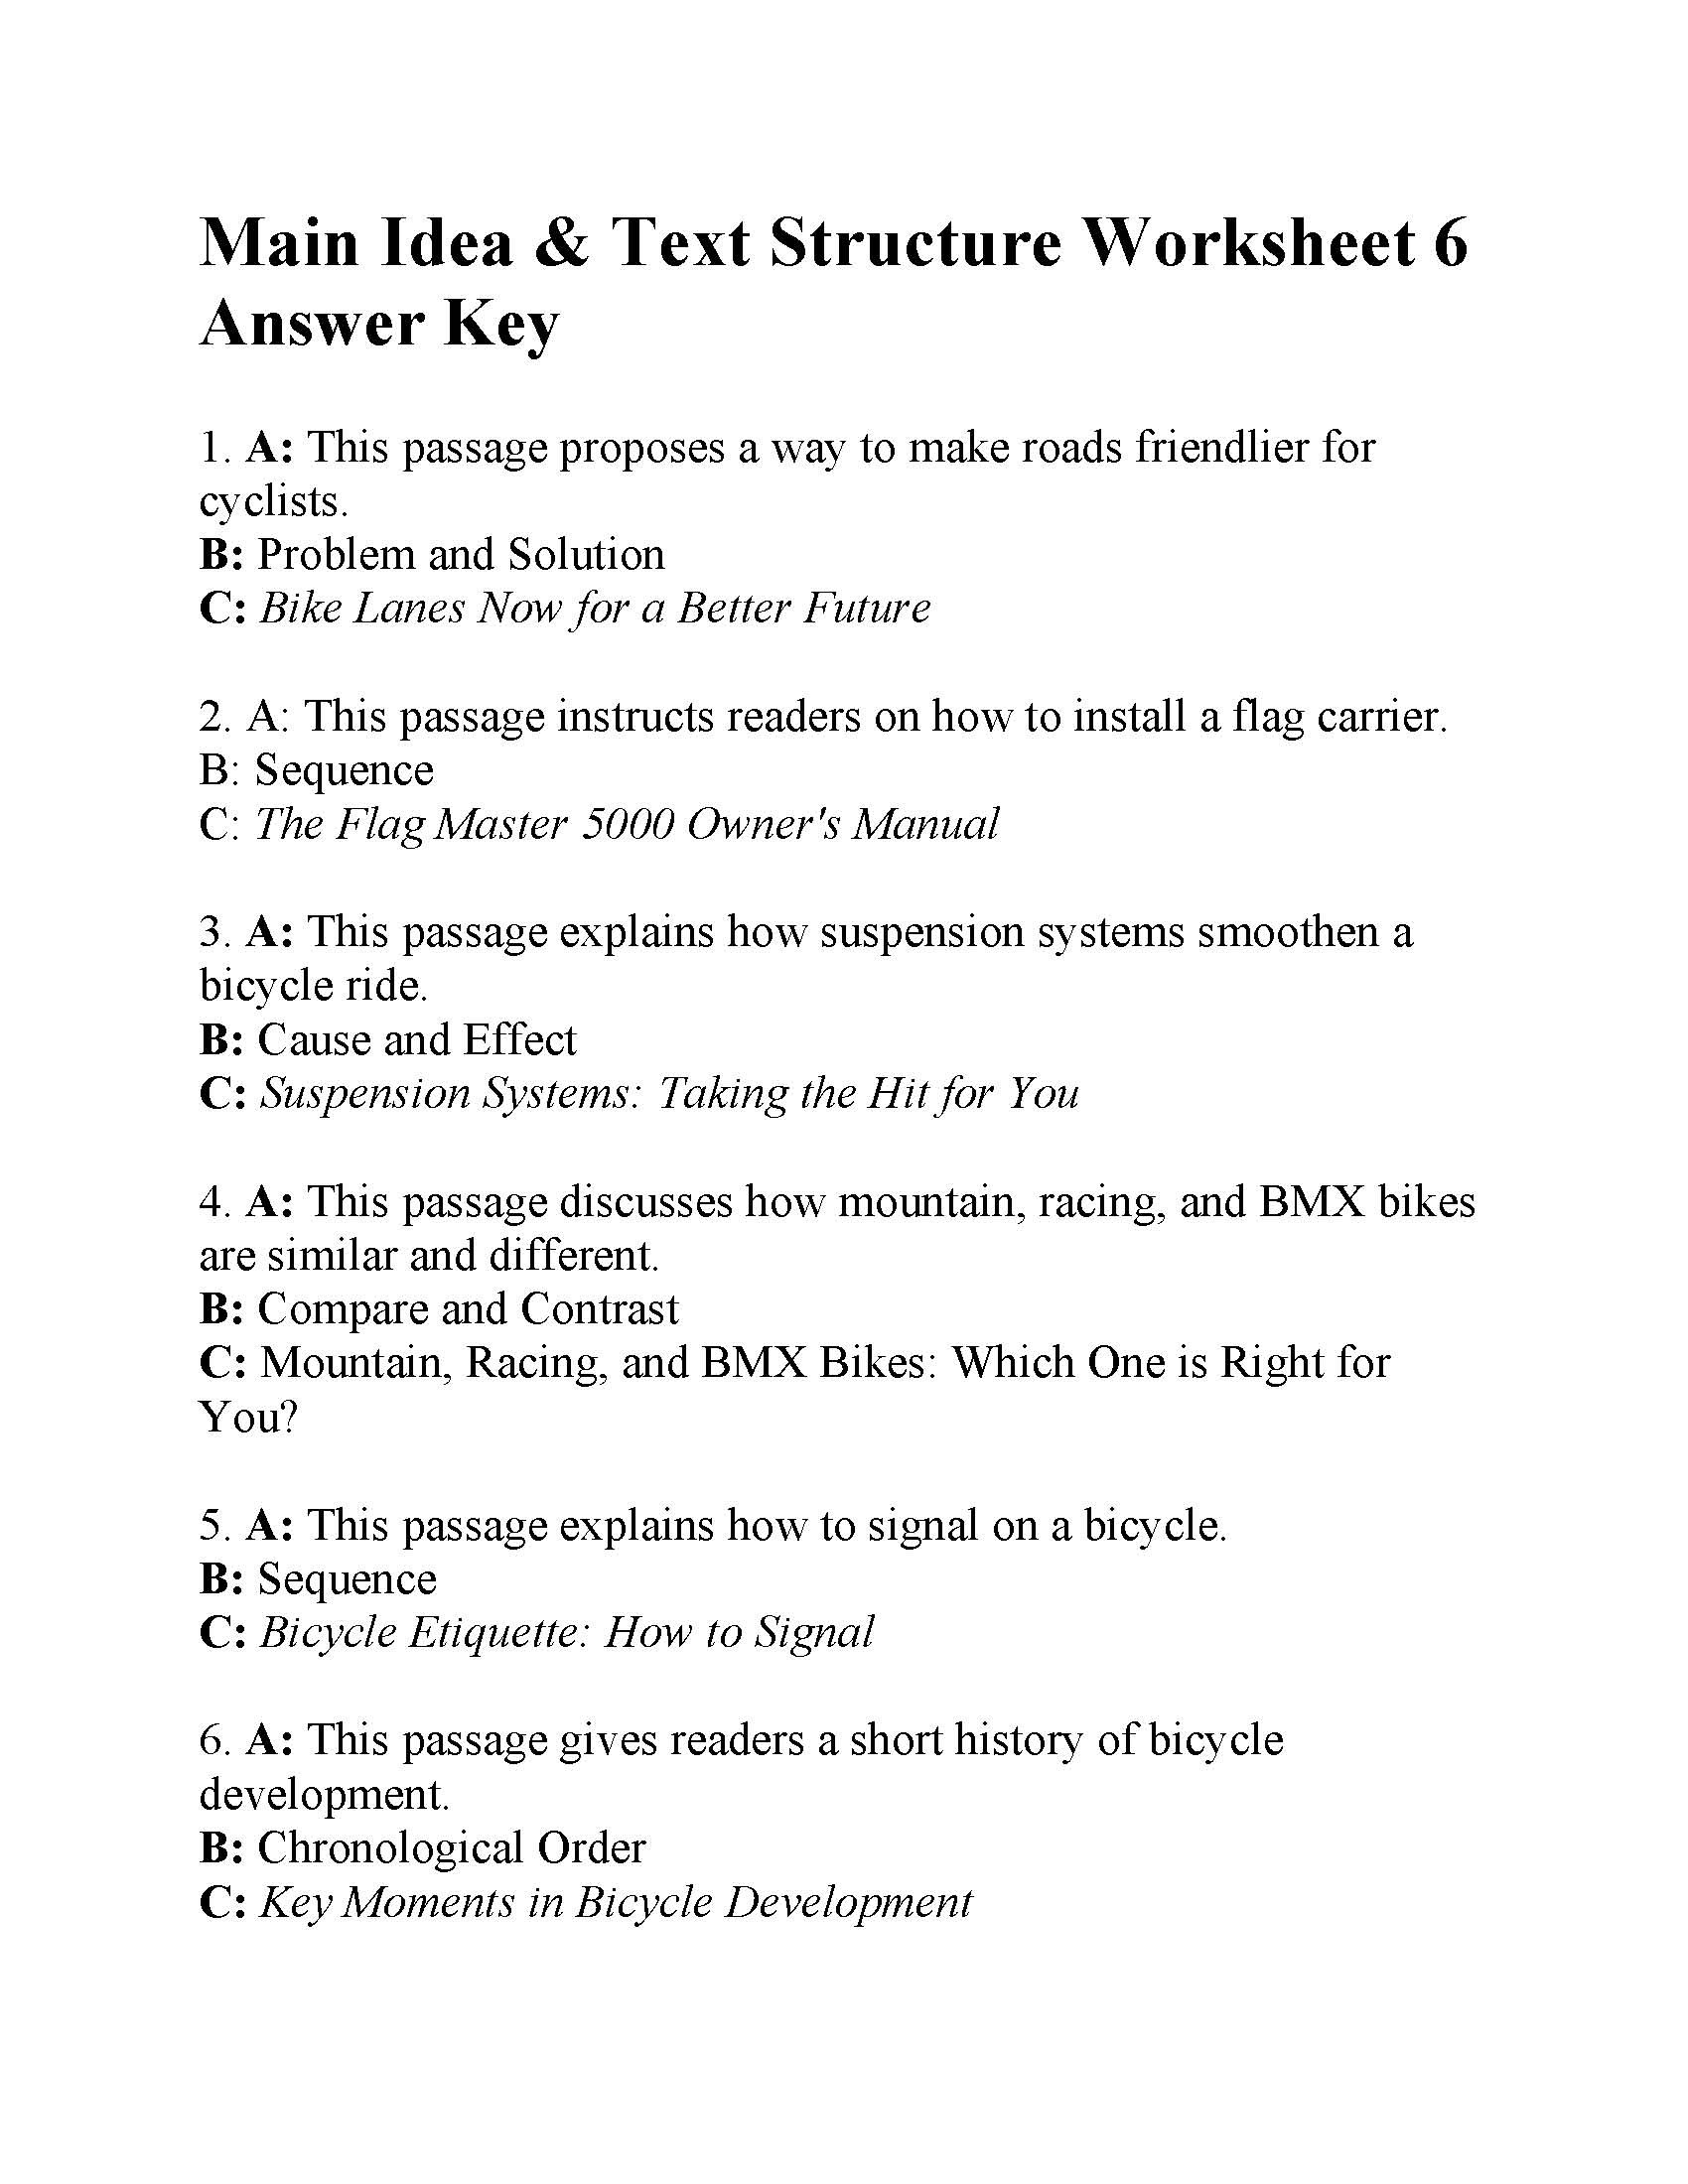 Text Structure Worksheet Pdf Main Idea and Text Structure Worksheet 6